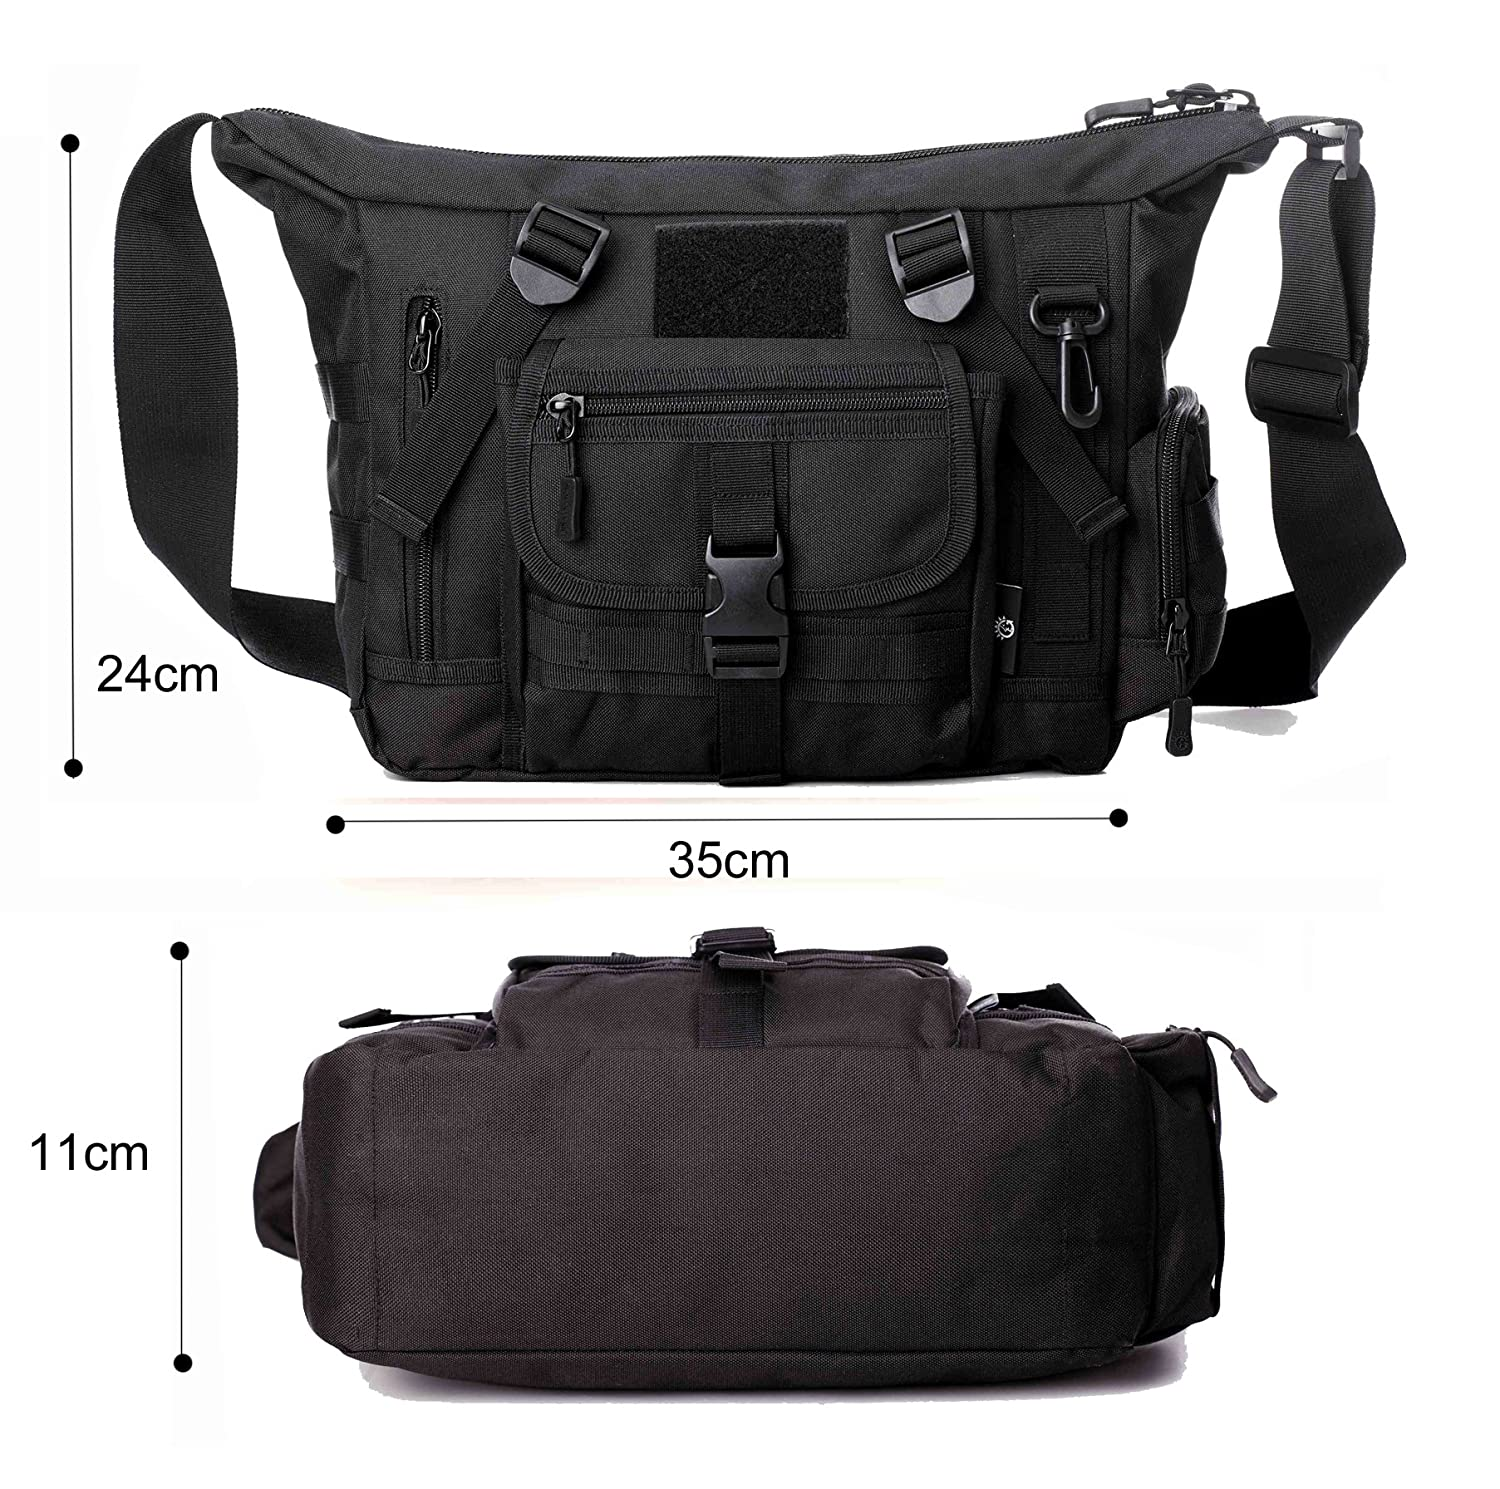 5b90ee553680 Amazon.com: Military Shoulder Bag Large Water Resistant Daypack with Molle  14 Inch Laptop Crossbody Messenger Bag for Hunting Camping Trekking Men  Women ...